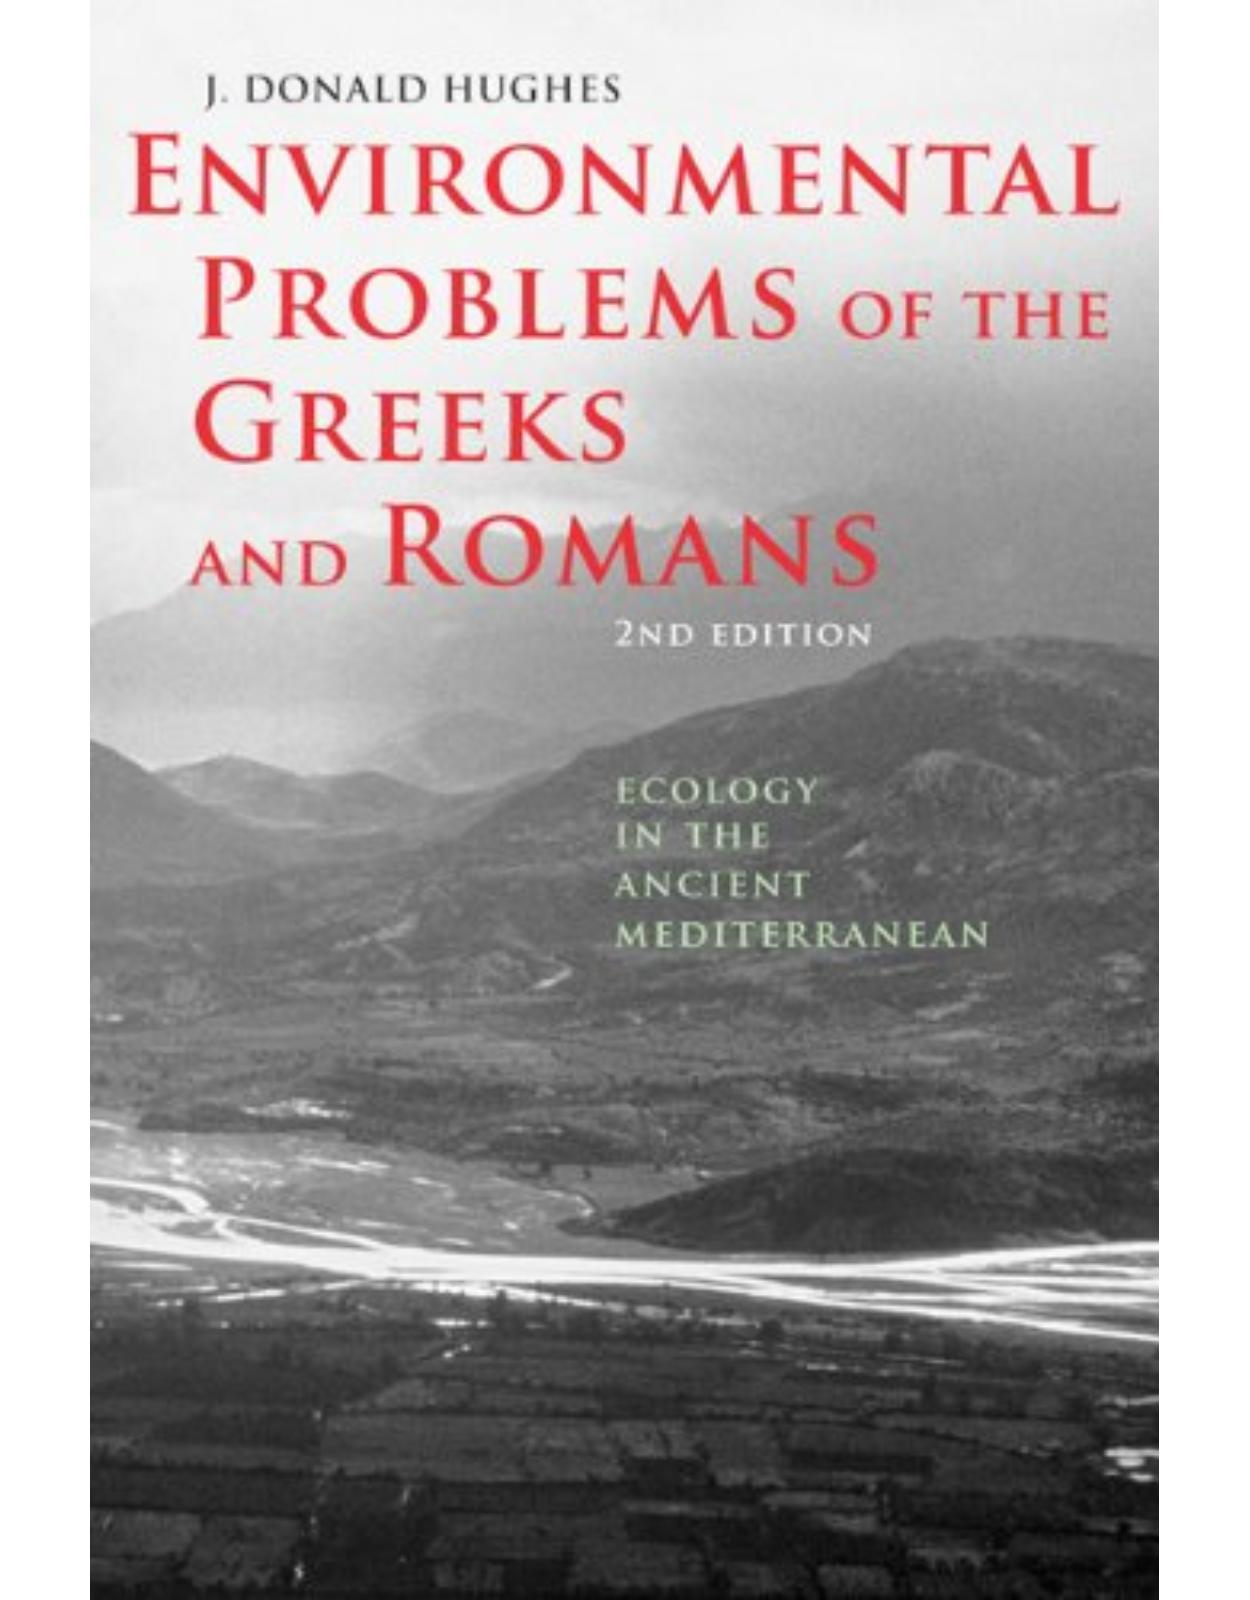 Environmental Problems of the Greeks and Romans, Ecology in the Ancient Mediterranean (Second Edition)